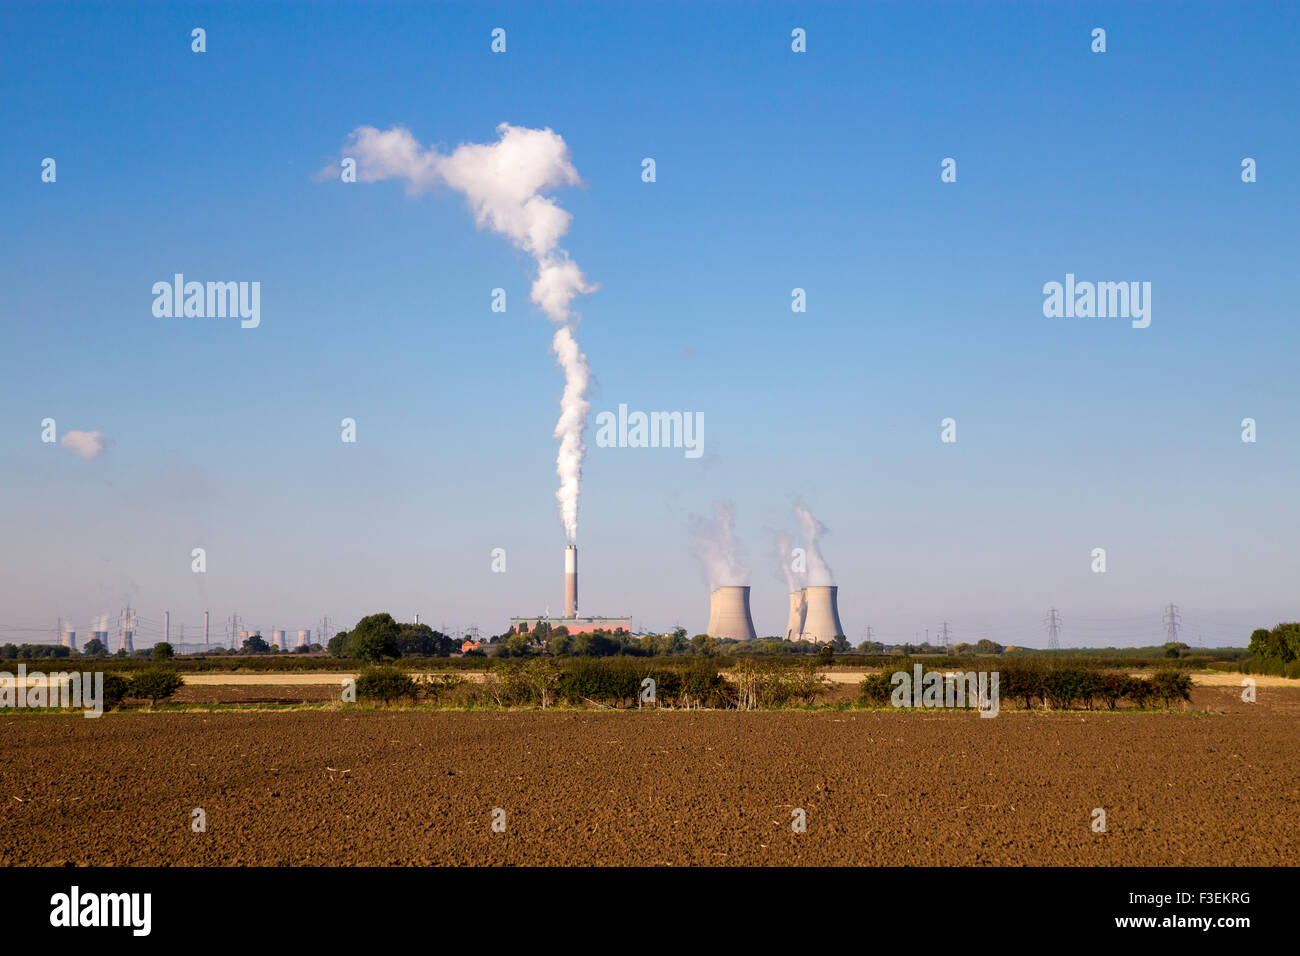 Stock photograph of Cottam power station with steam / smoke emissions rising into the sky from the cooling towers. - Stock Image